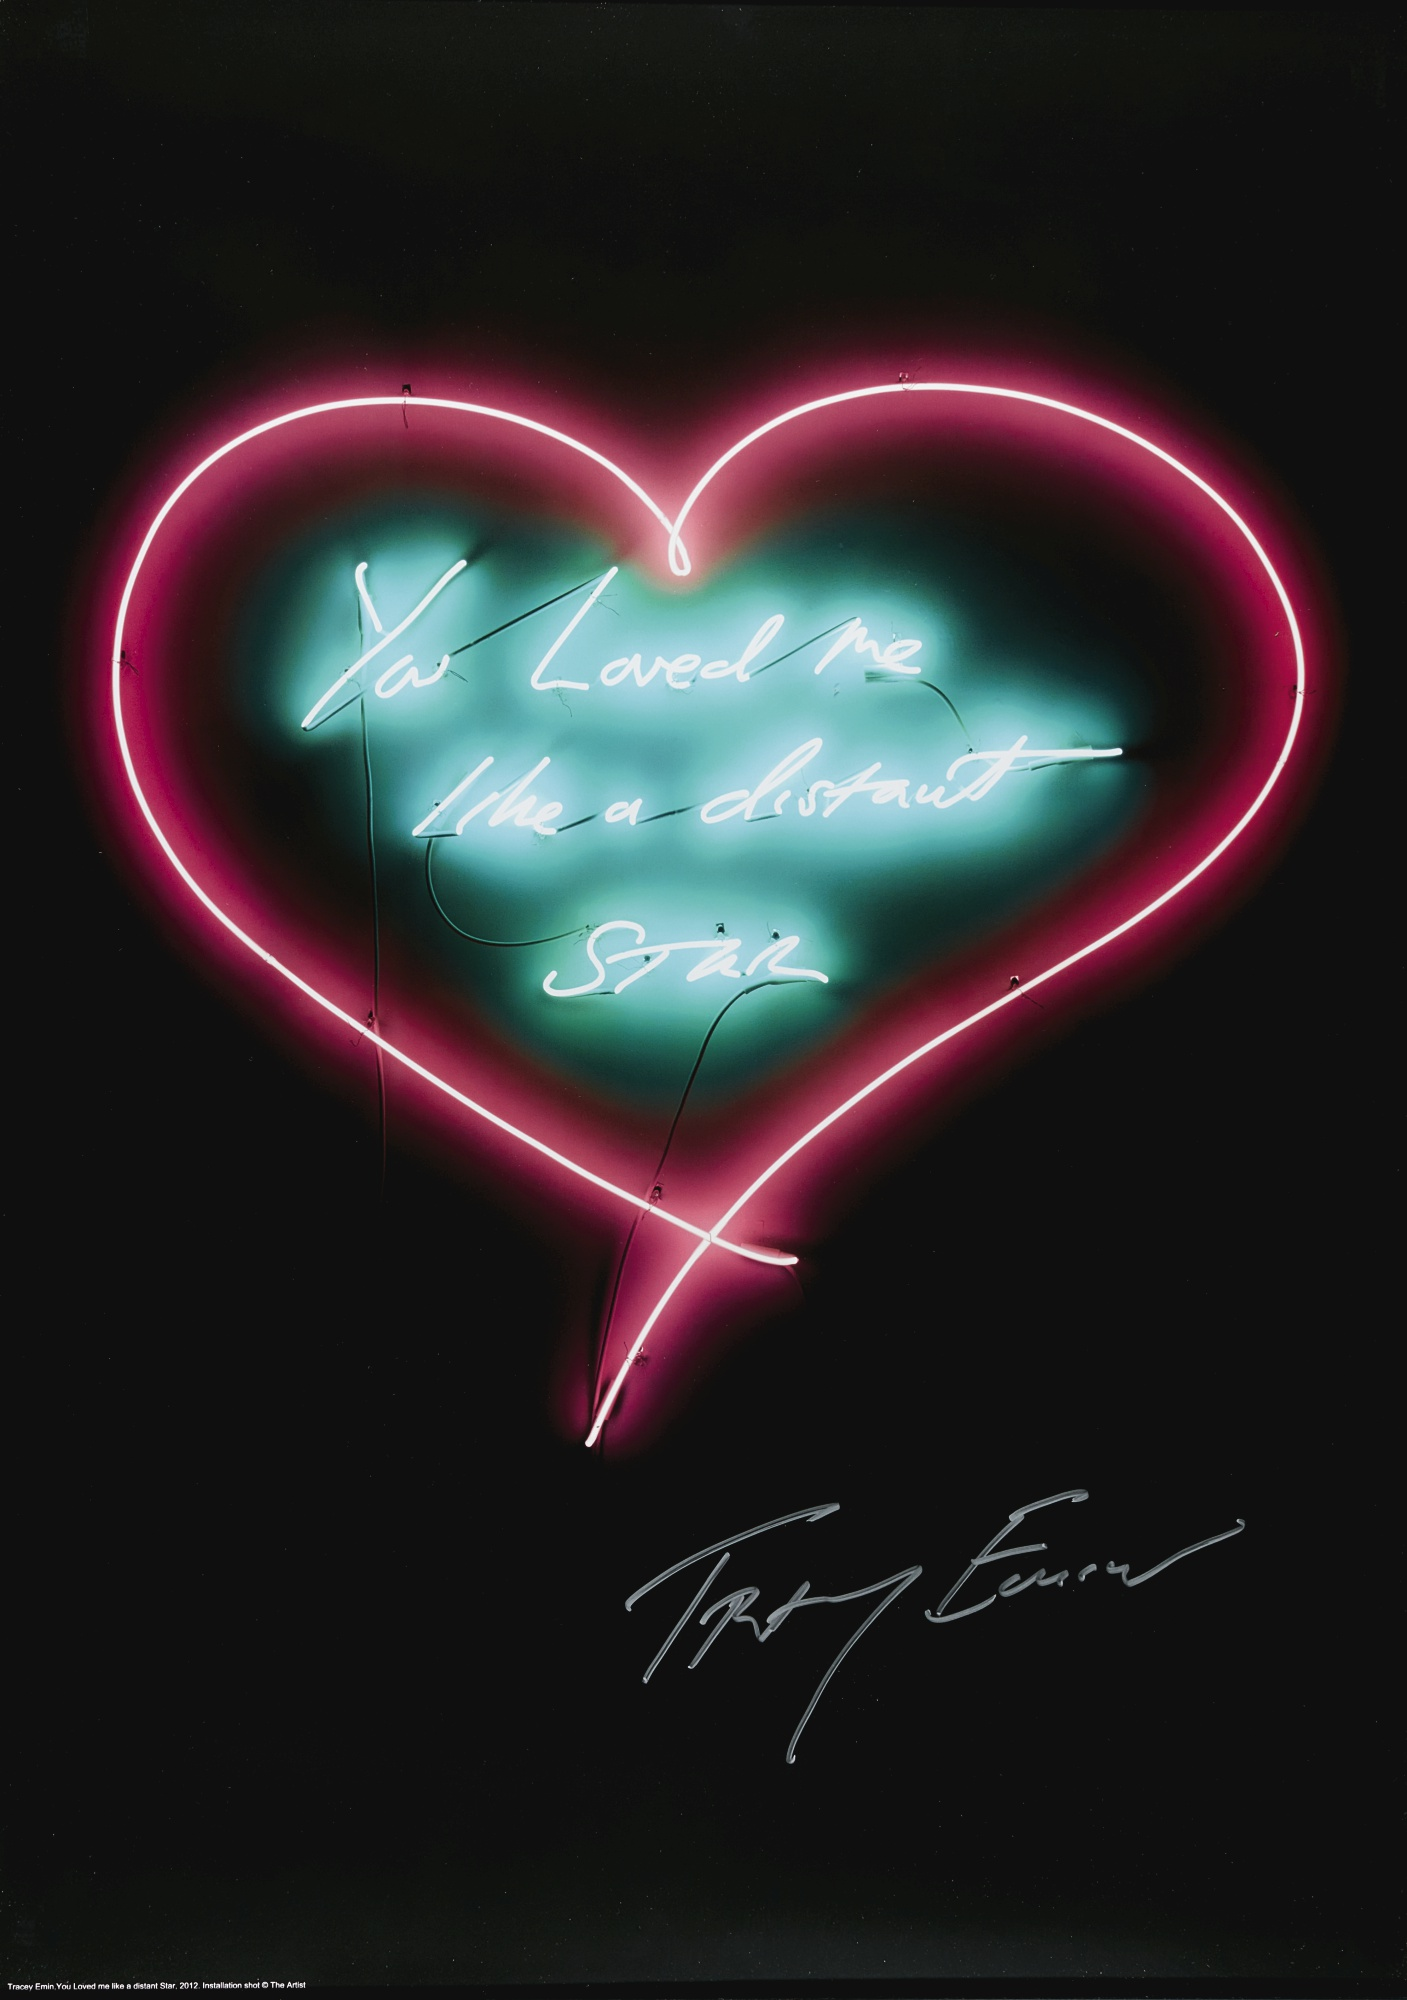 Tracey Emin-My Favourite Little Bird; And You Loved Me Like A Distant Star-2013